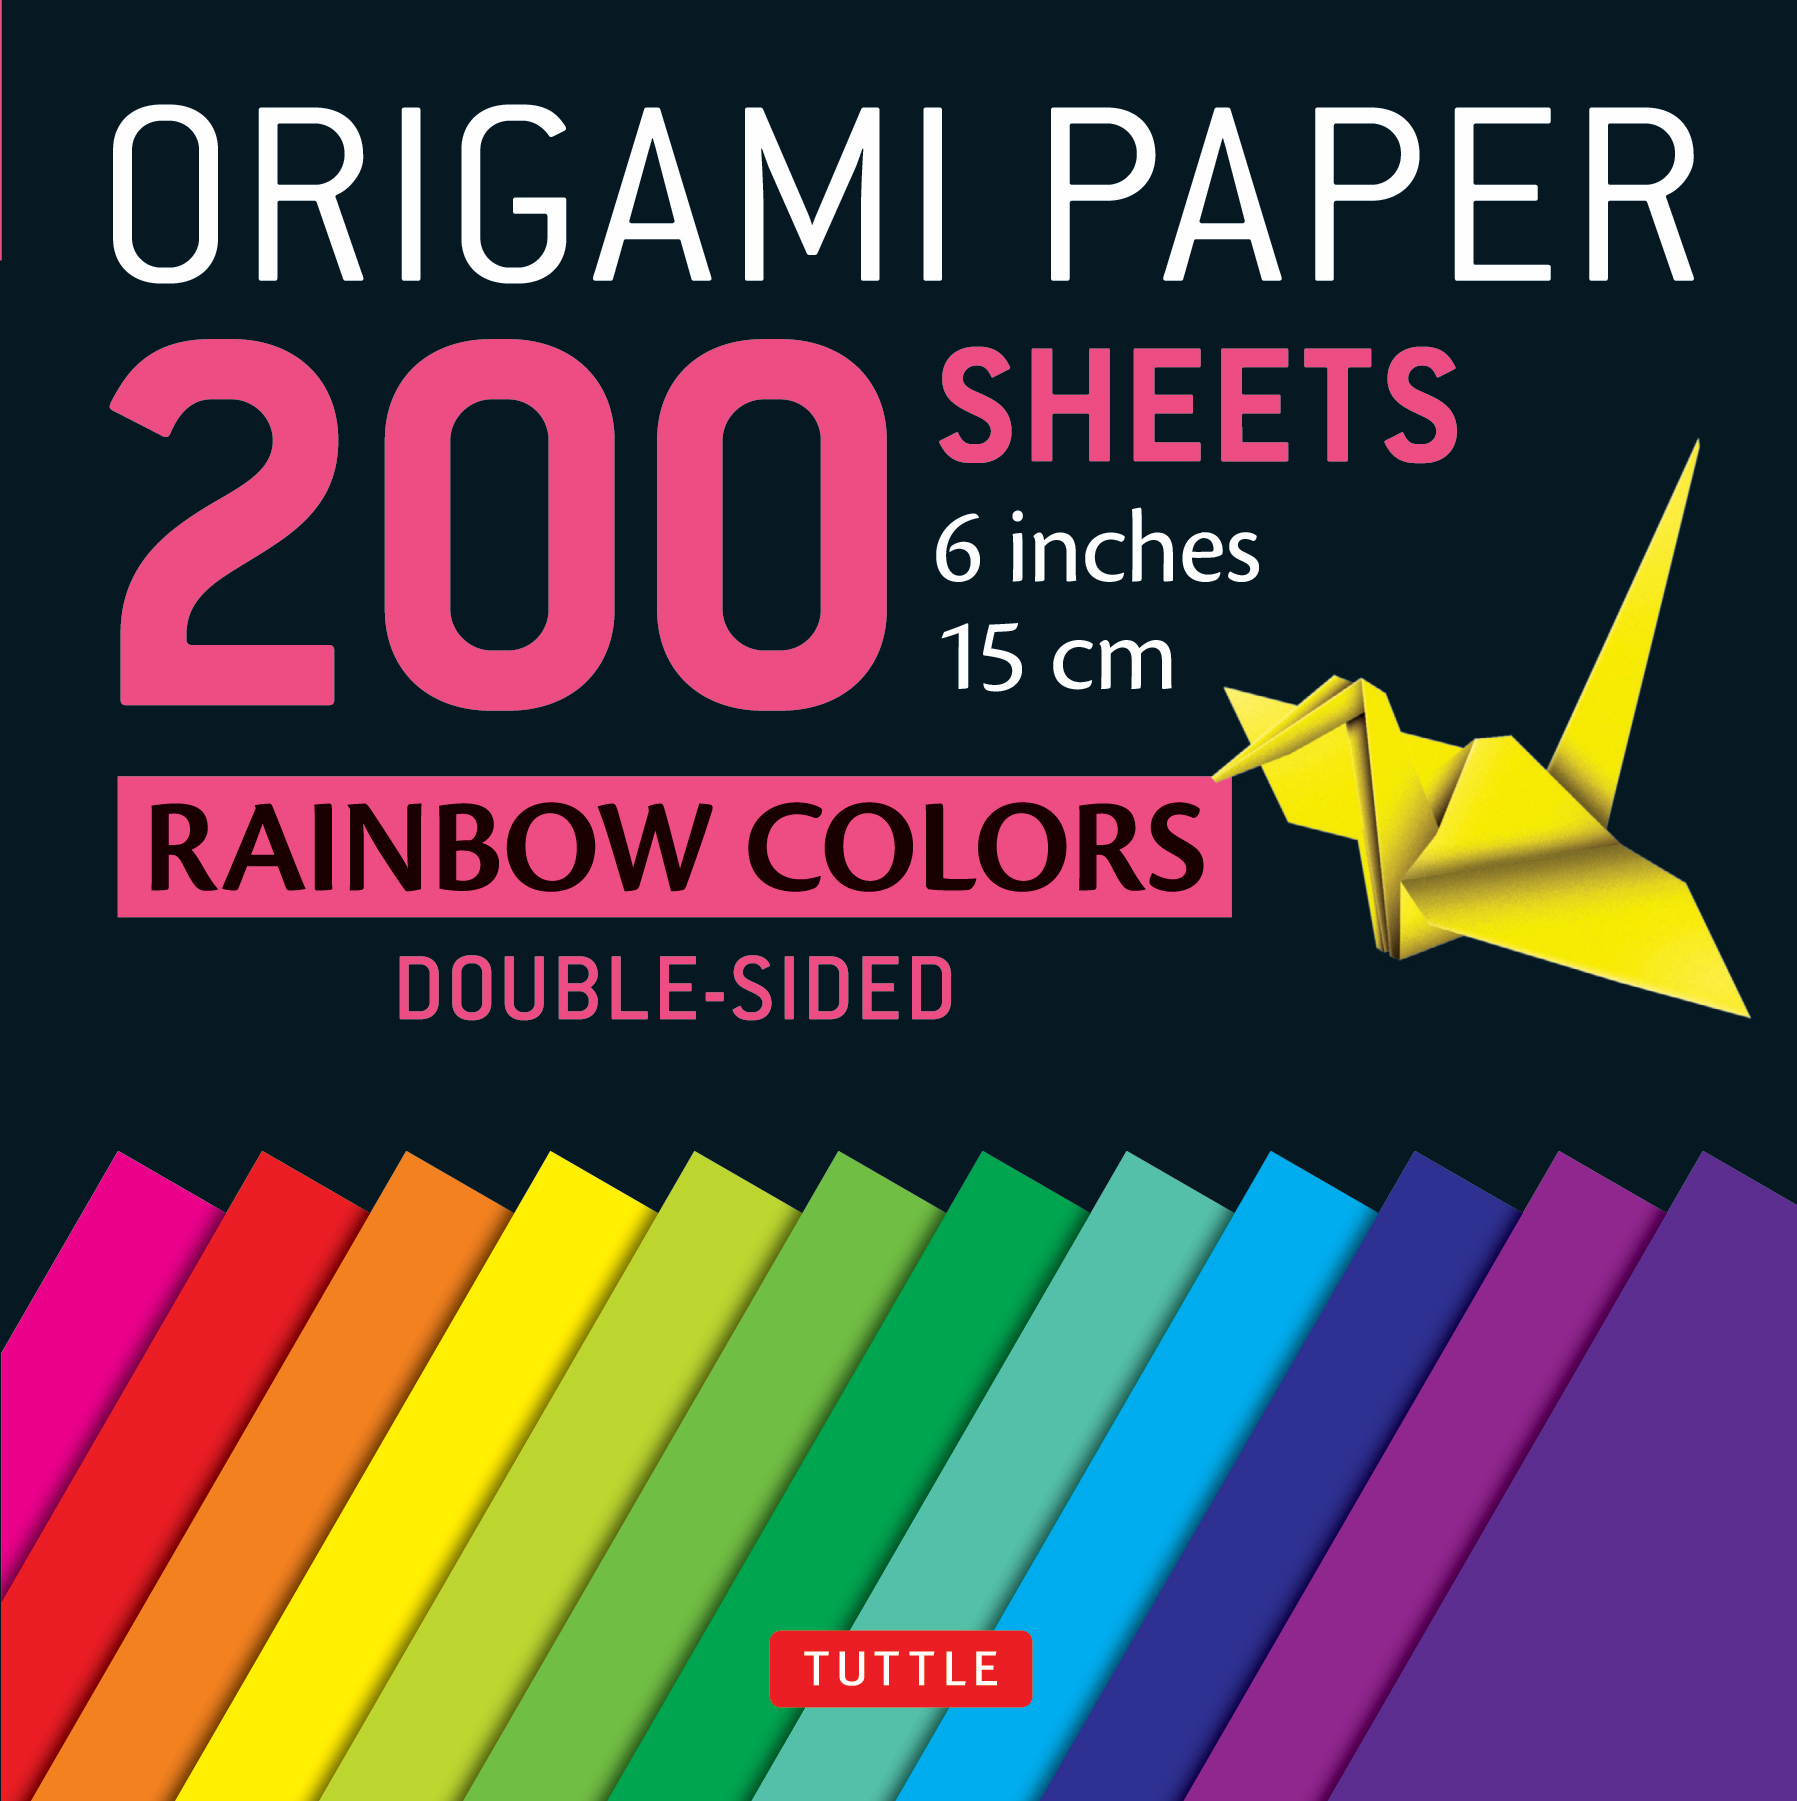 Origami Paper 200 Sheets Newsouth Books